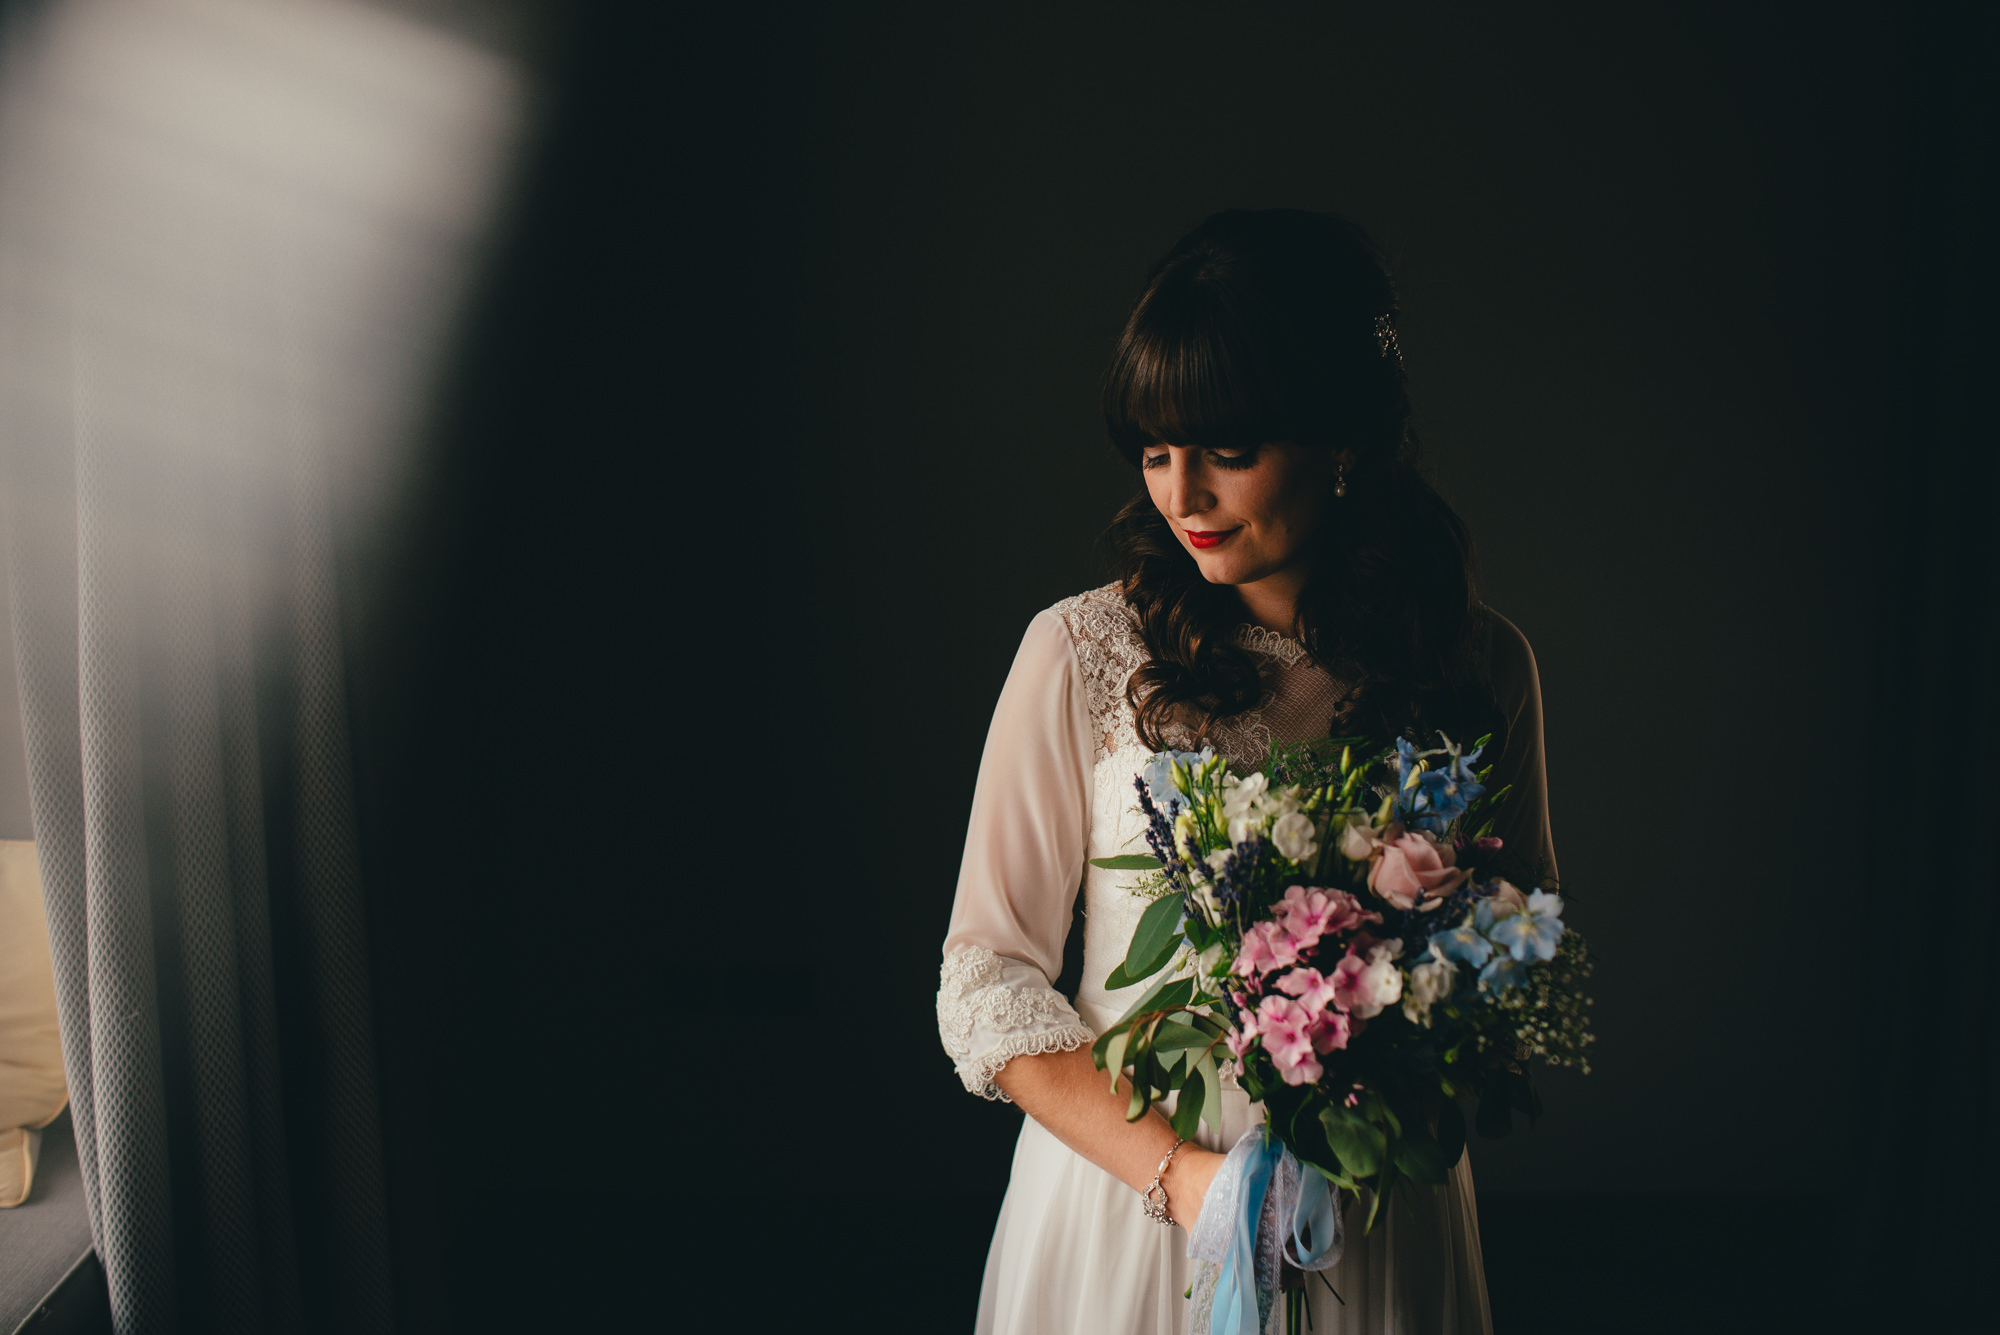 bride pretty light, lace boho dress, portrait